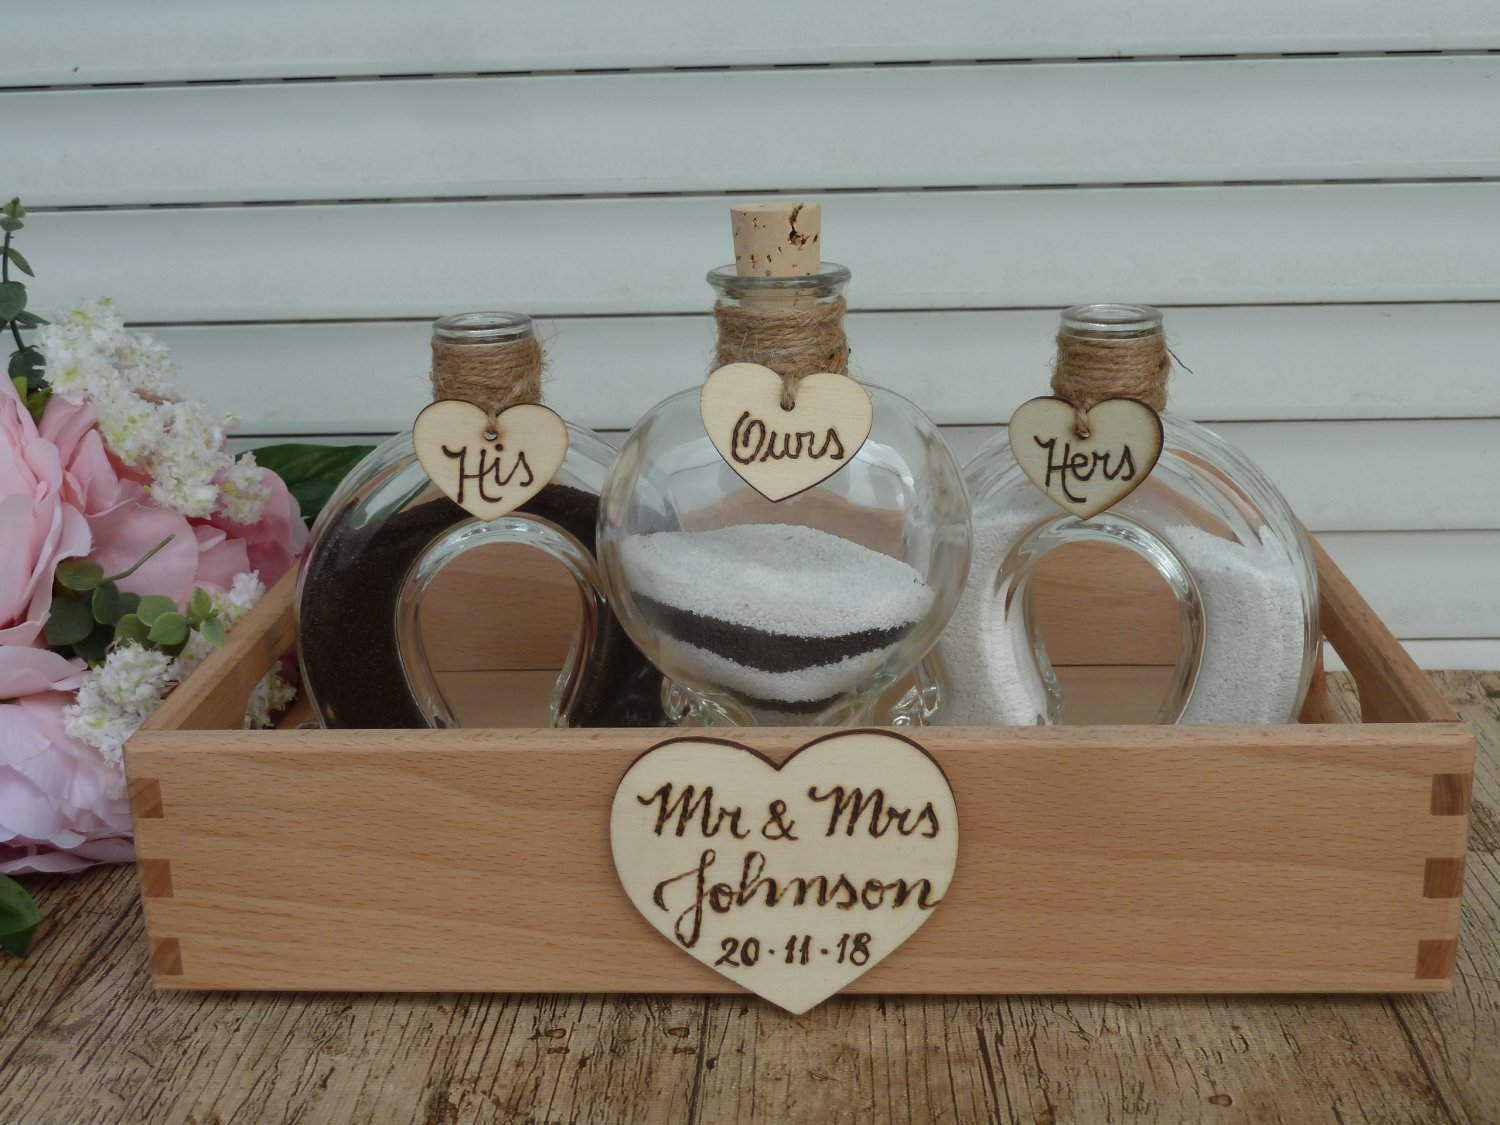 Wedding Unity Sand Ceremony Set for 2. Horse Shoe, Heart Shape Bottles. Personalized, Western.